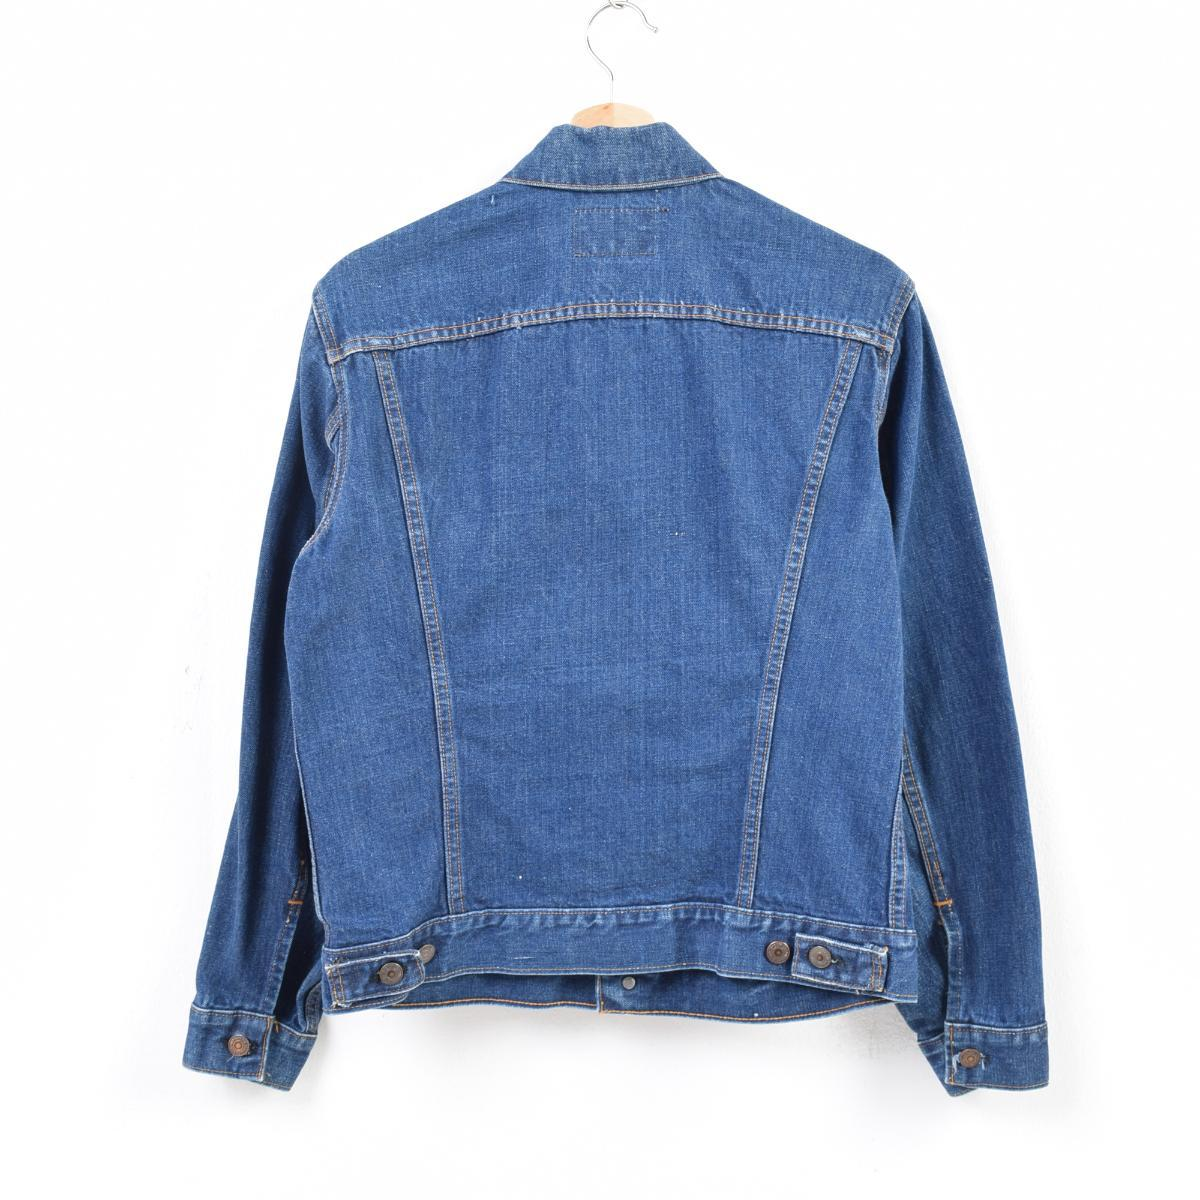 51c7299518928 Men M vintage  was7602 in the dark blue 70s made in denim jacket G Jean USA  with the Levis Levi s 70505 0217 care tag